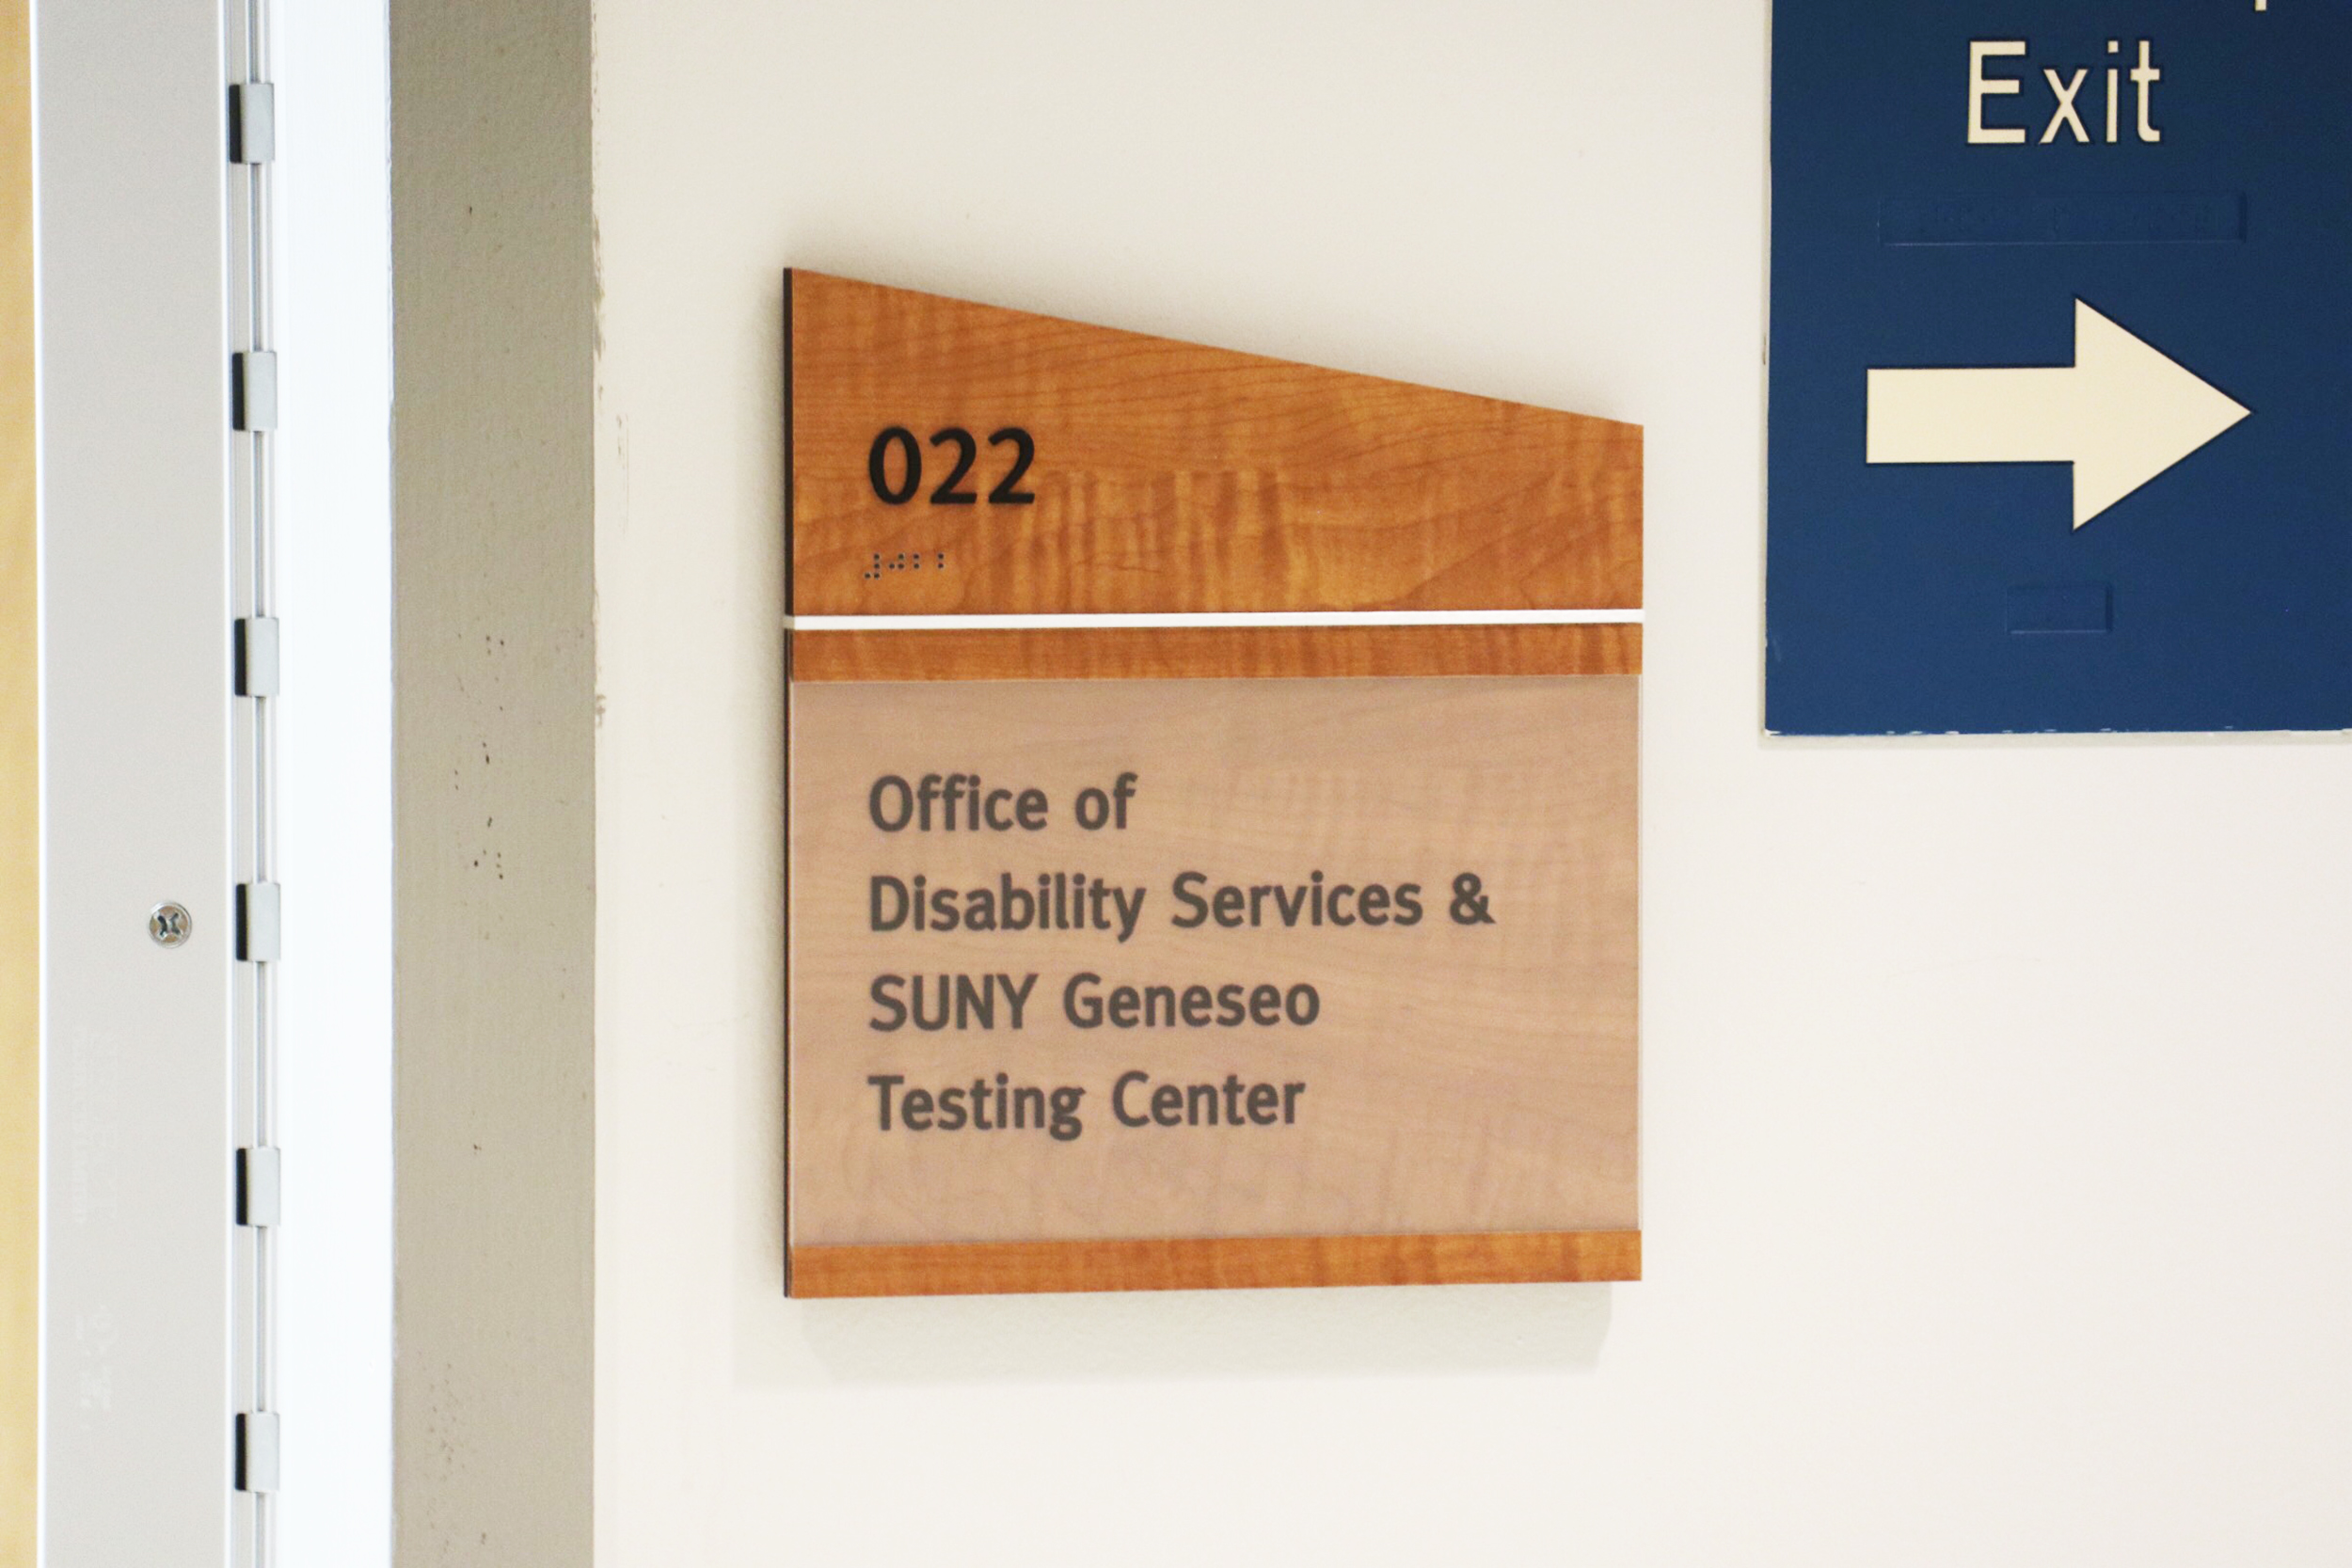 The college is looking to rebrand and improve The Office of Disabilities Services & SUNY Geneseo Testing Center (pictured above) located in Erwin Hall after the retirement of Assistant Dean for Disabilities Services Tabitha Buggie-Hunt. Students have raised issues with a lack of support from the office in the past and some hope this will bring positive changes to how the college approaches accommodations for students with disabilities. The college partnered with national organization AHEAD for consulting purposes to improve guidelines for disabilities services. (Kenji Nagayoshi/staff photographer)